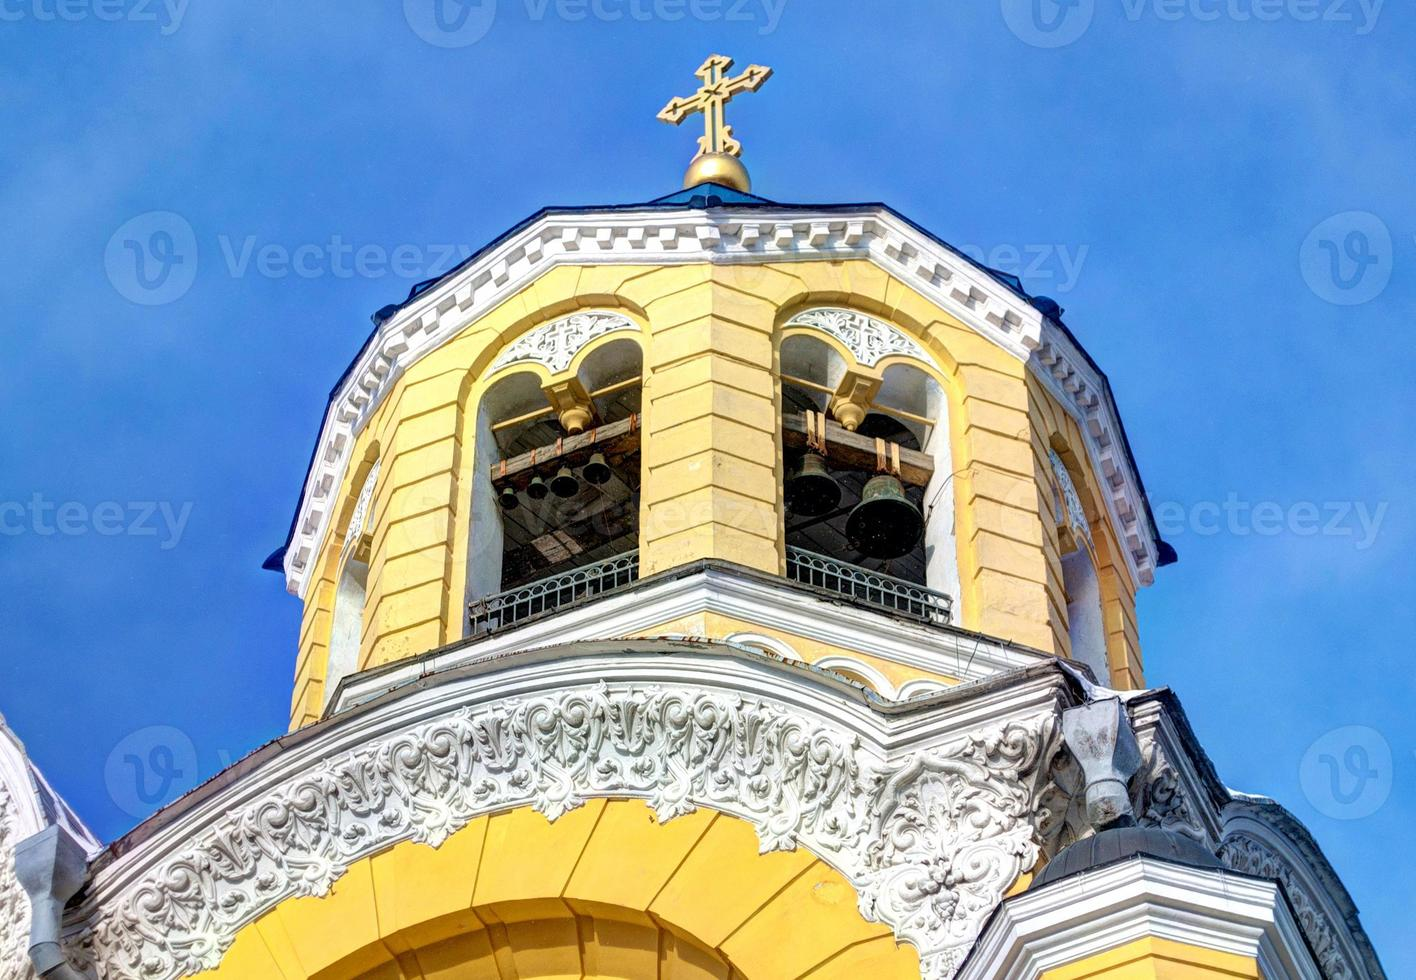 dome of the church with bells photo